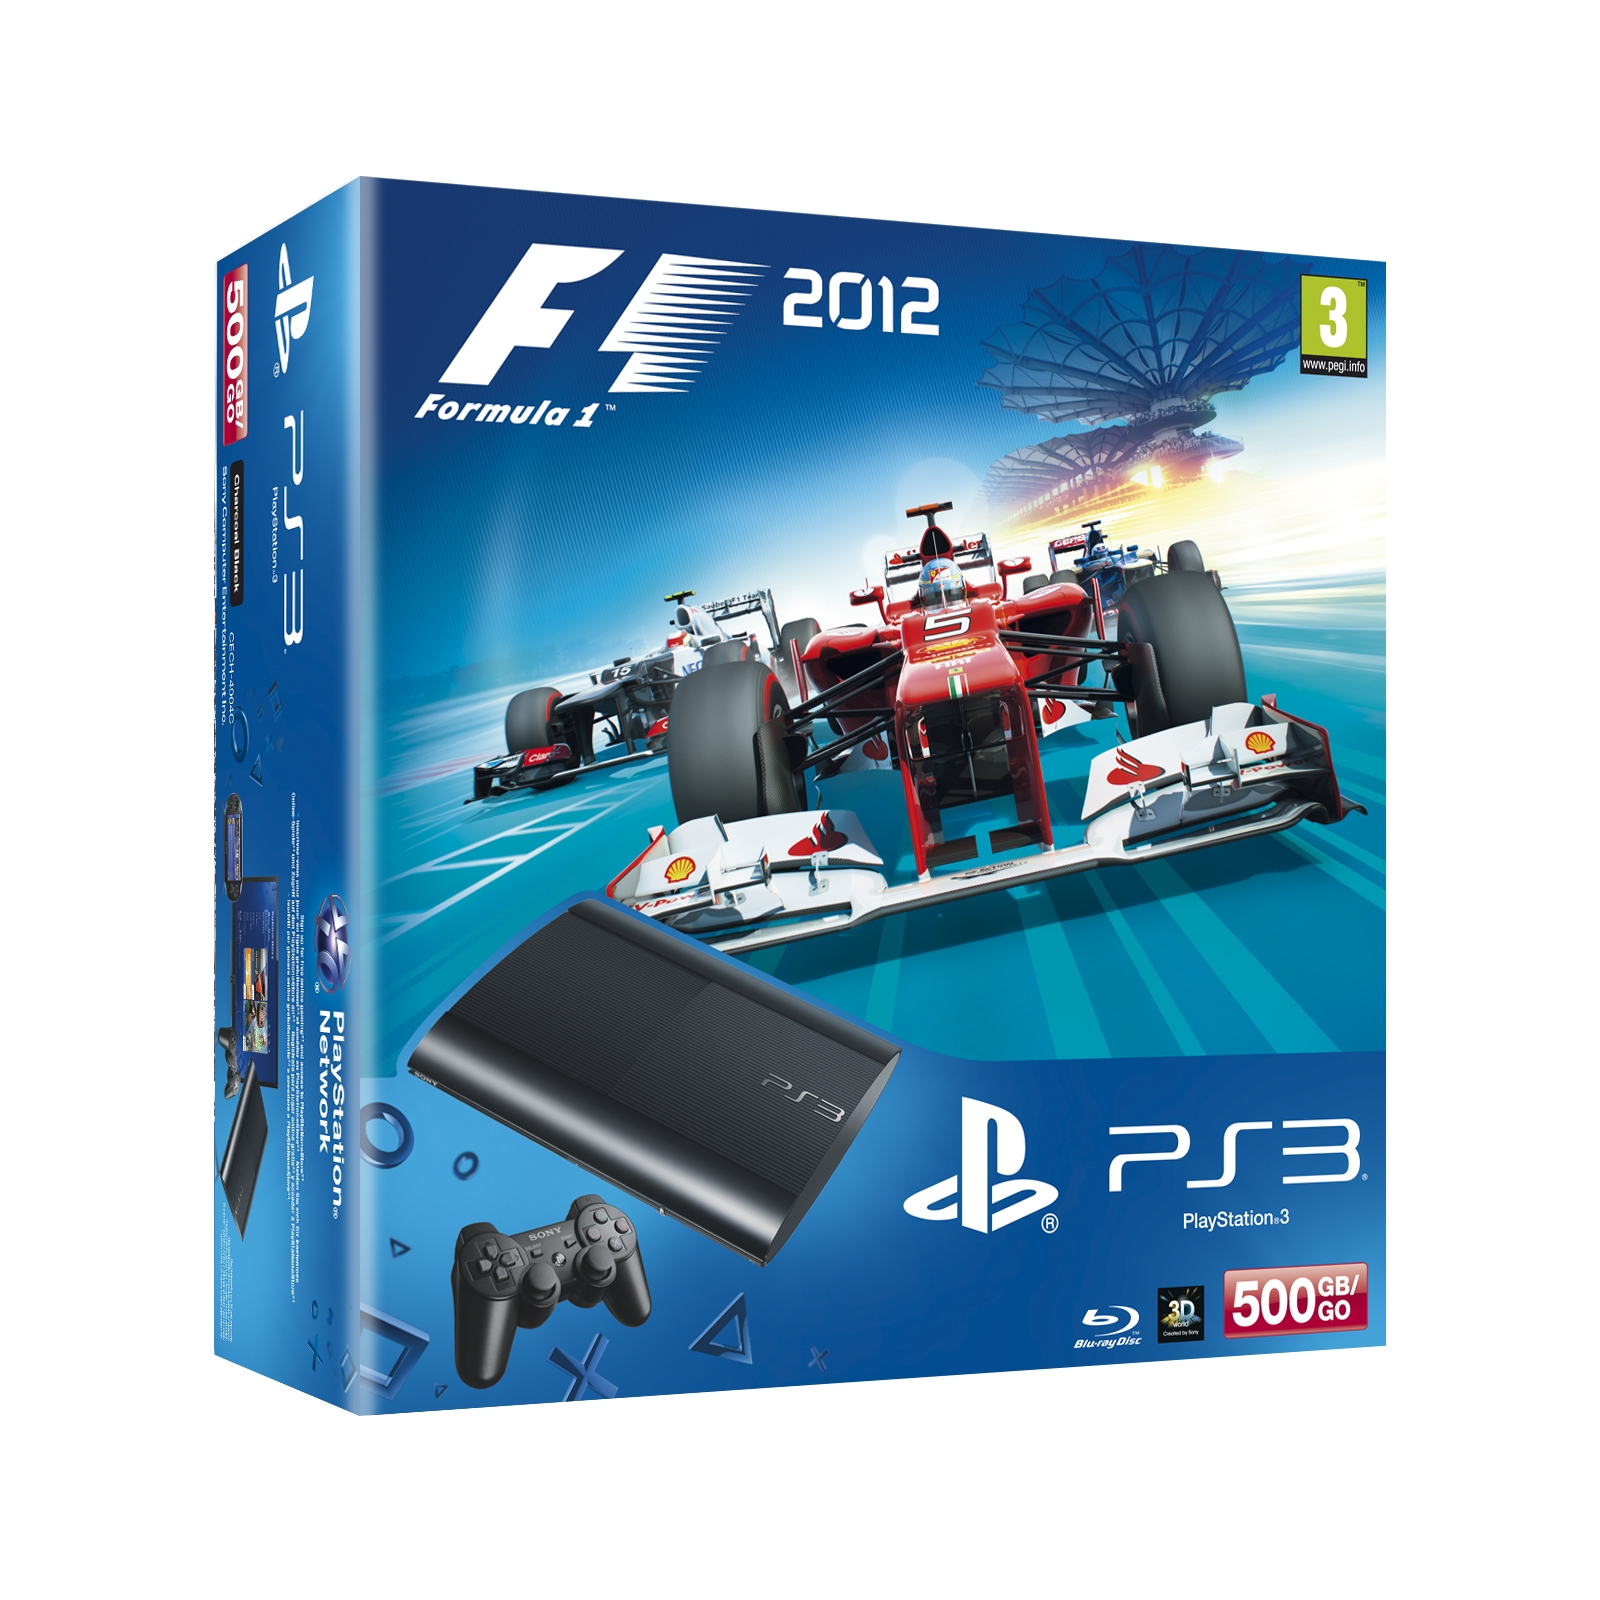 Consola Ps3 Slim 500gb Nueva  +   Formula 1 2012 PACKPS3F1